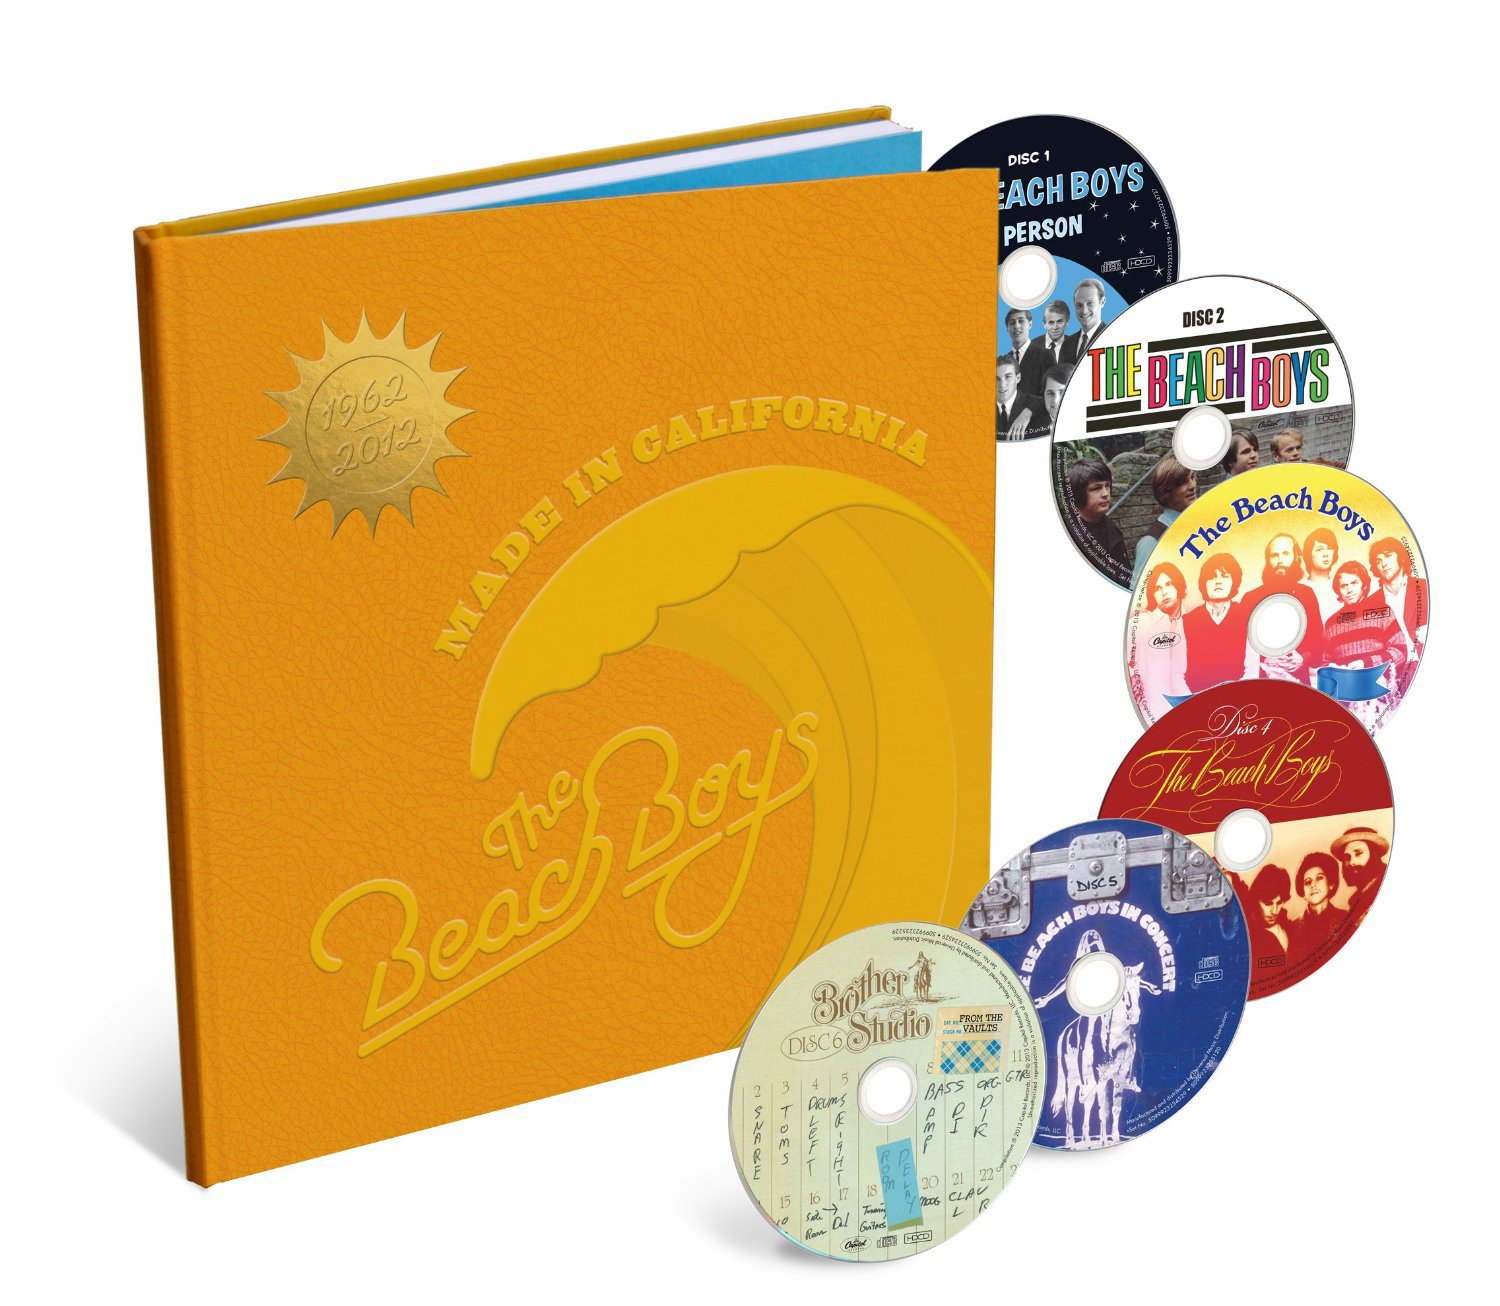 Made In California [6 CD Box Set] by CD